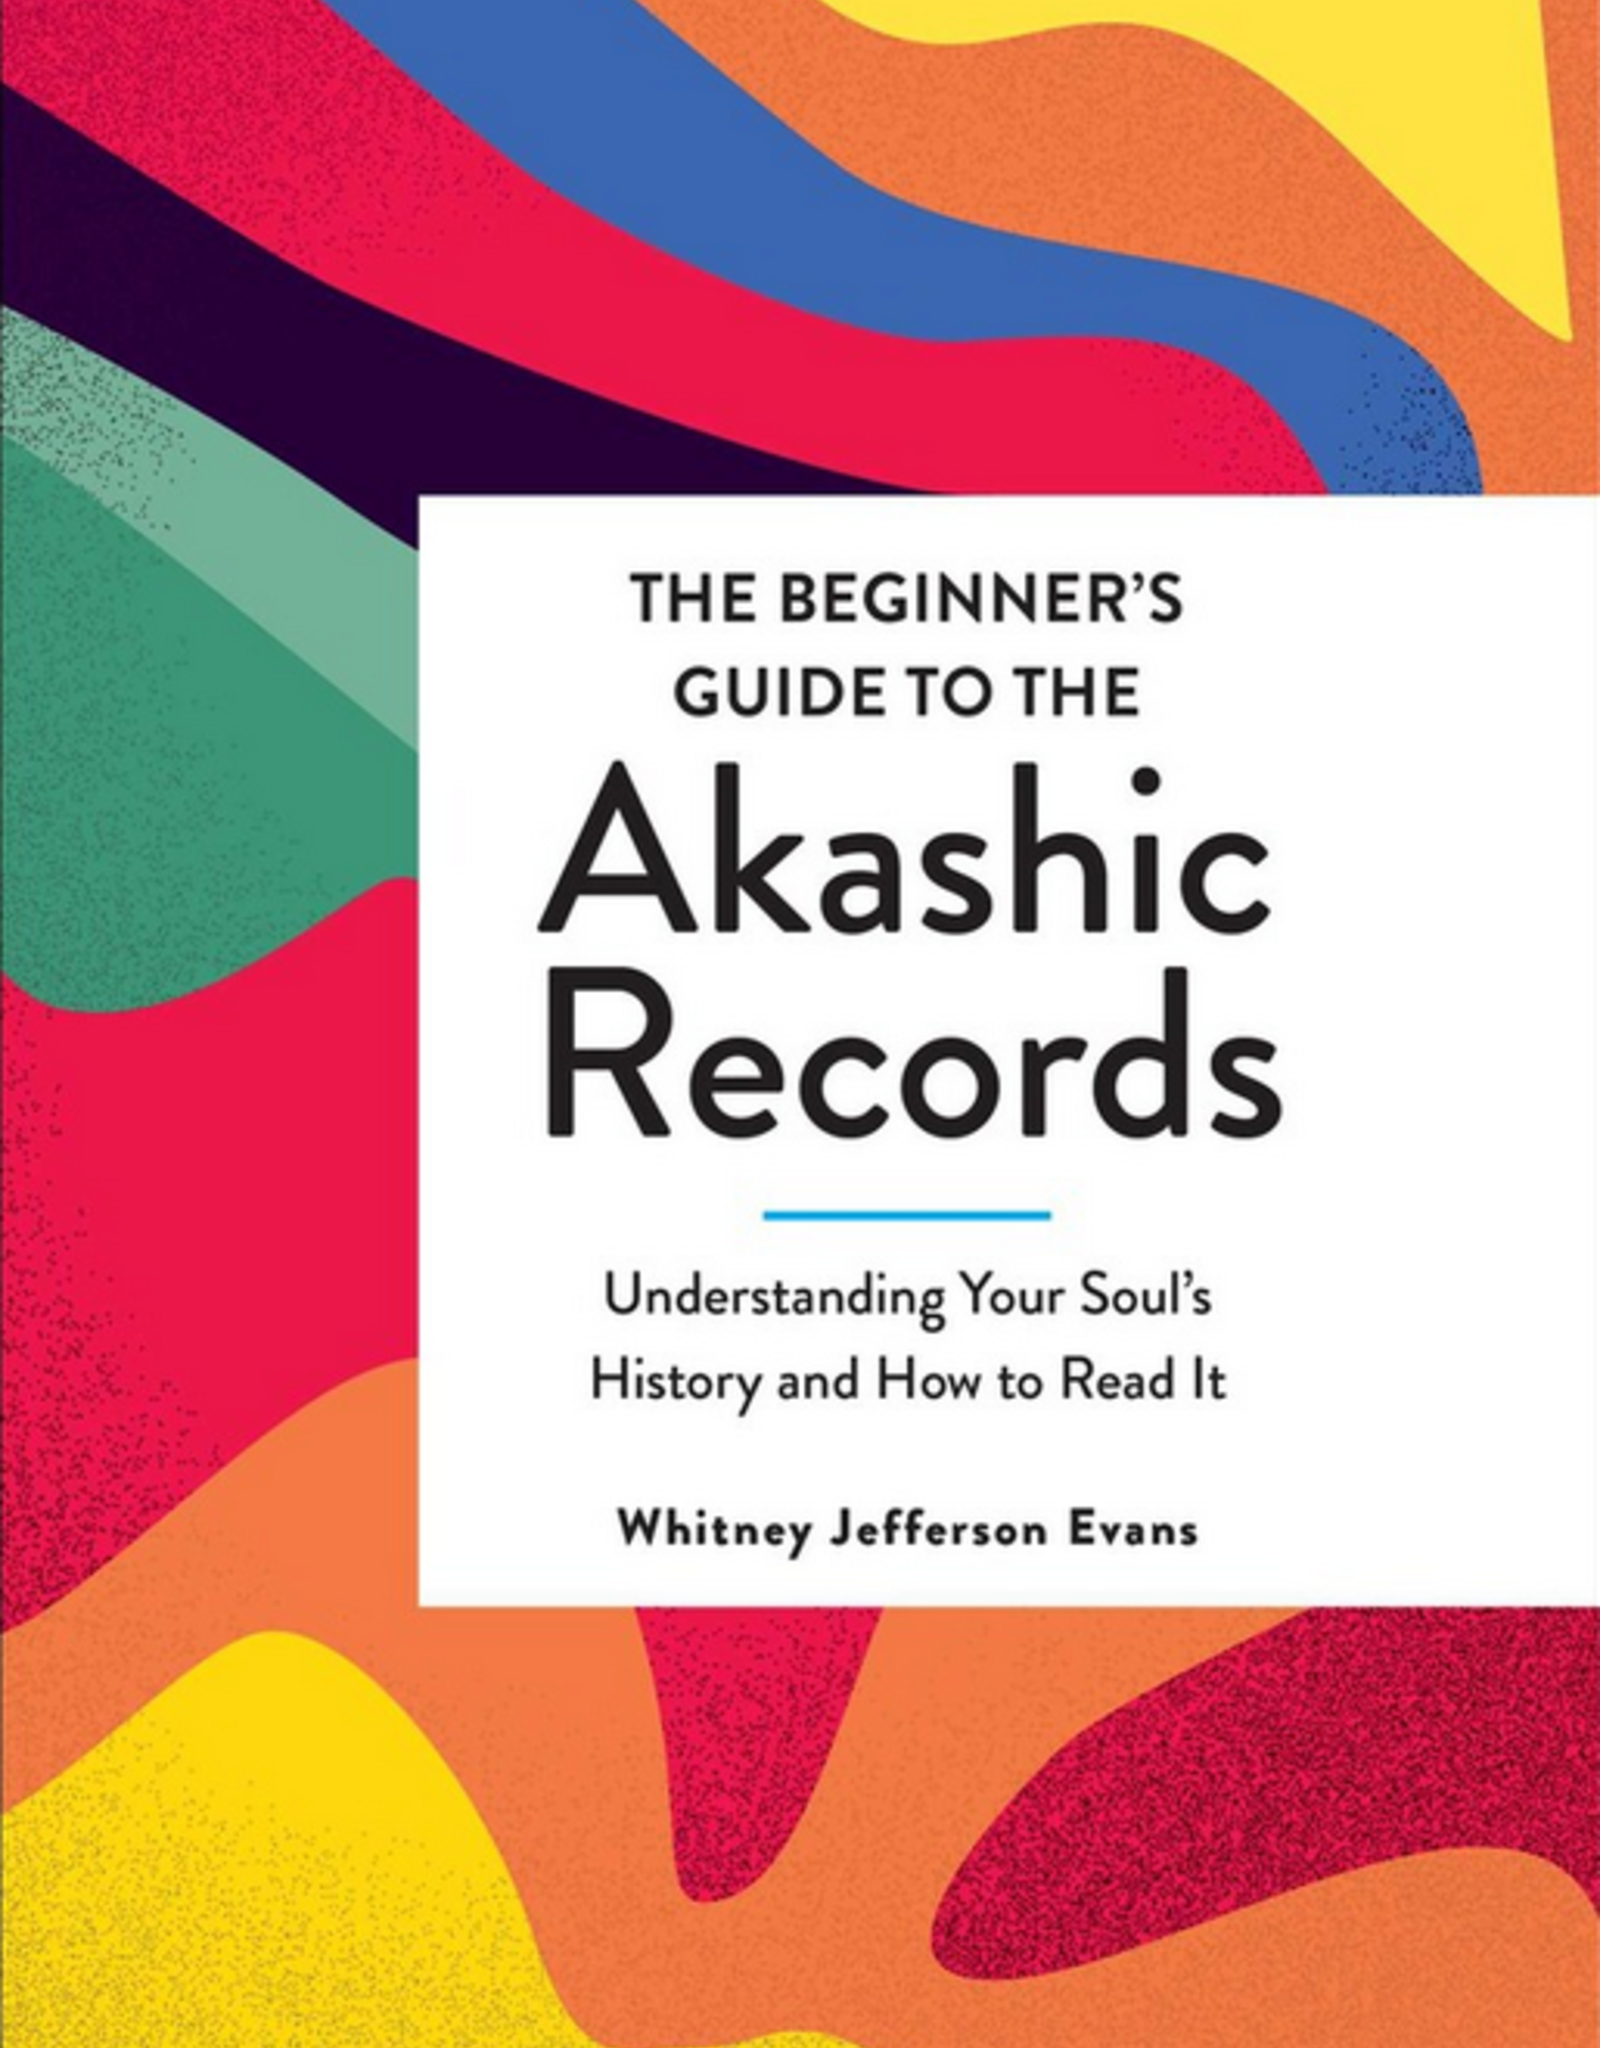 Simon & Schuster *The Beginner's Guide to the Akashic Records